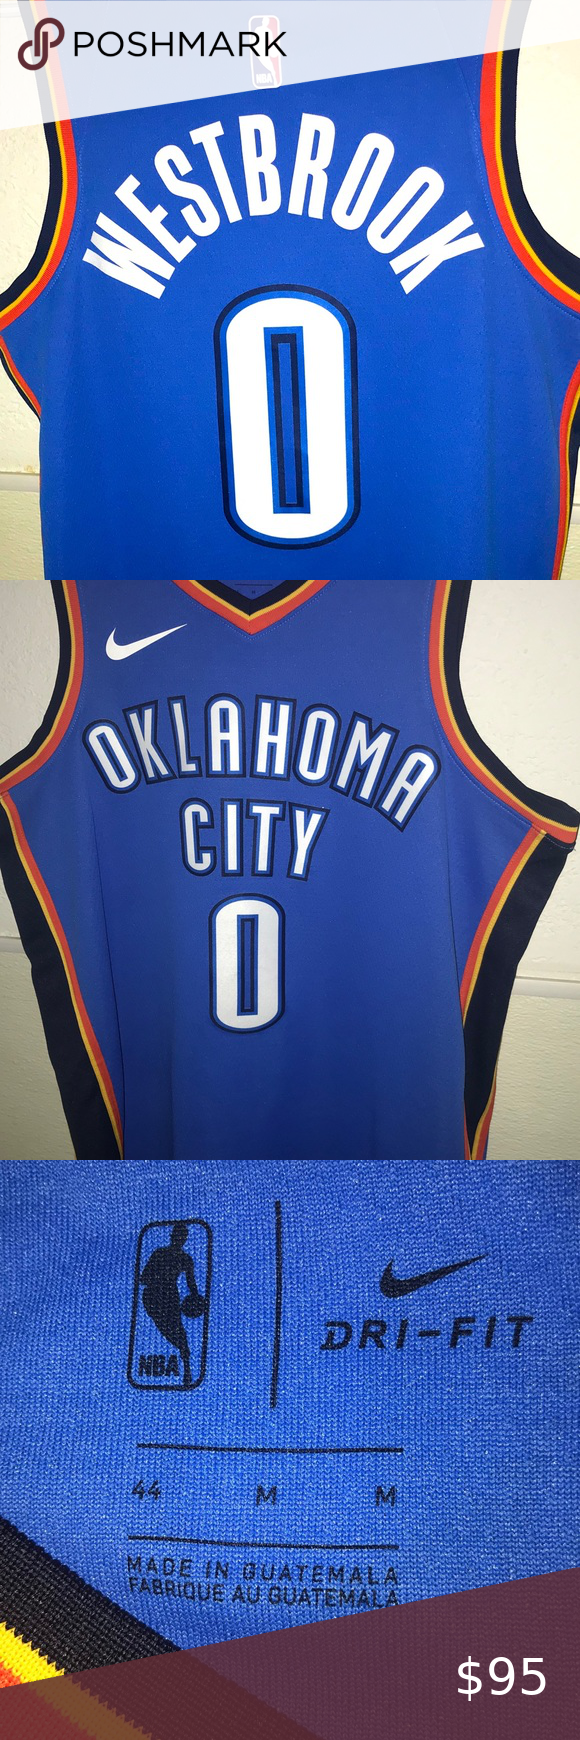 russell westbrook home jersey